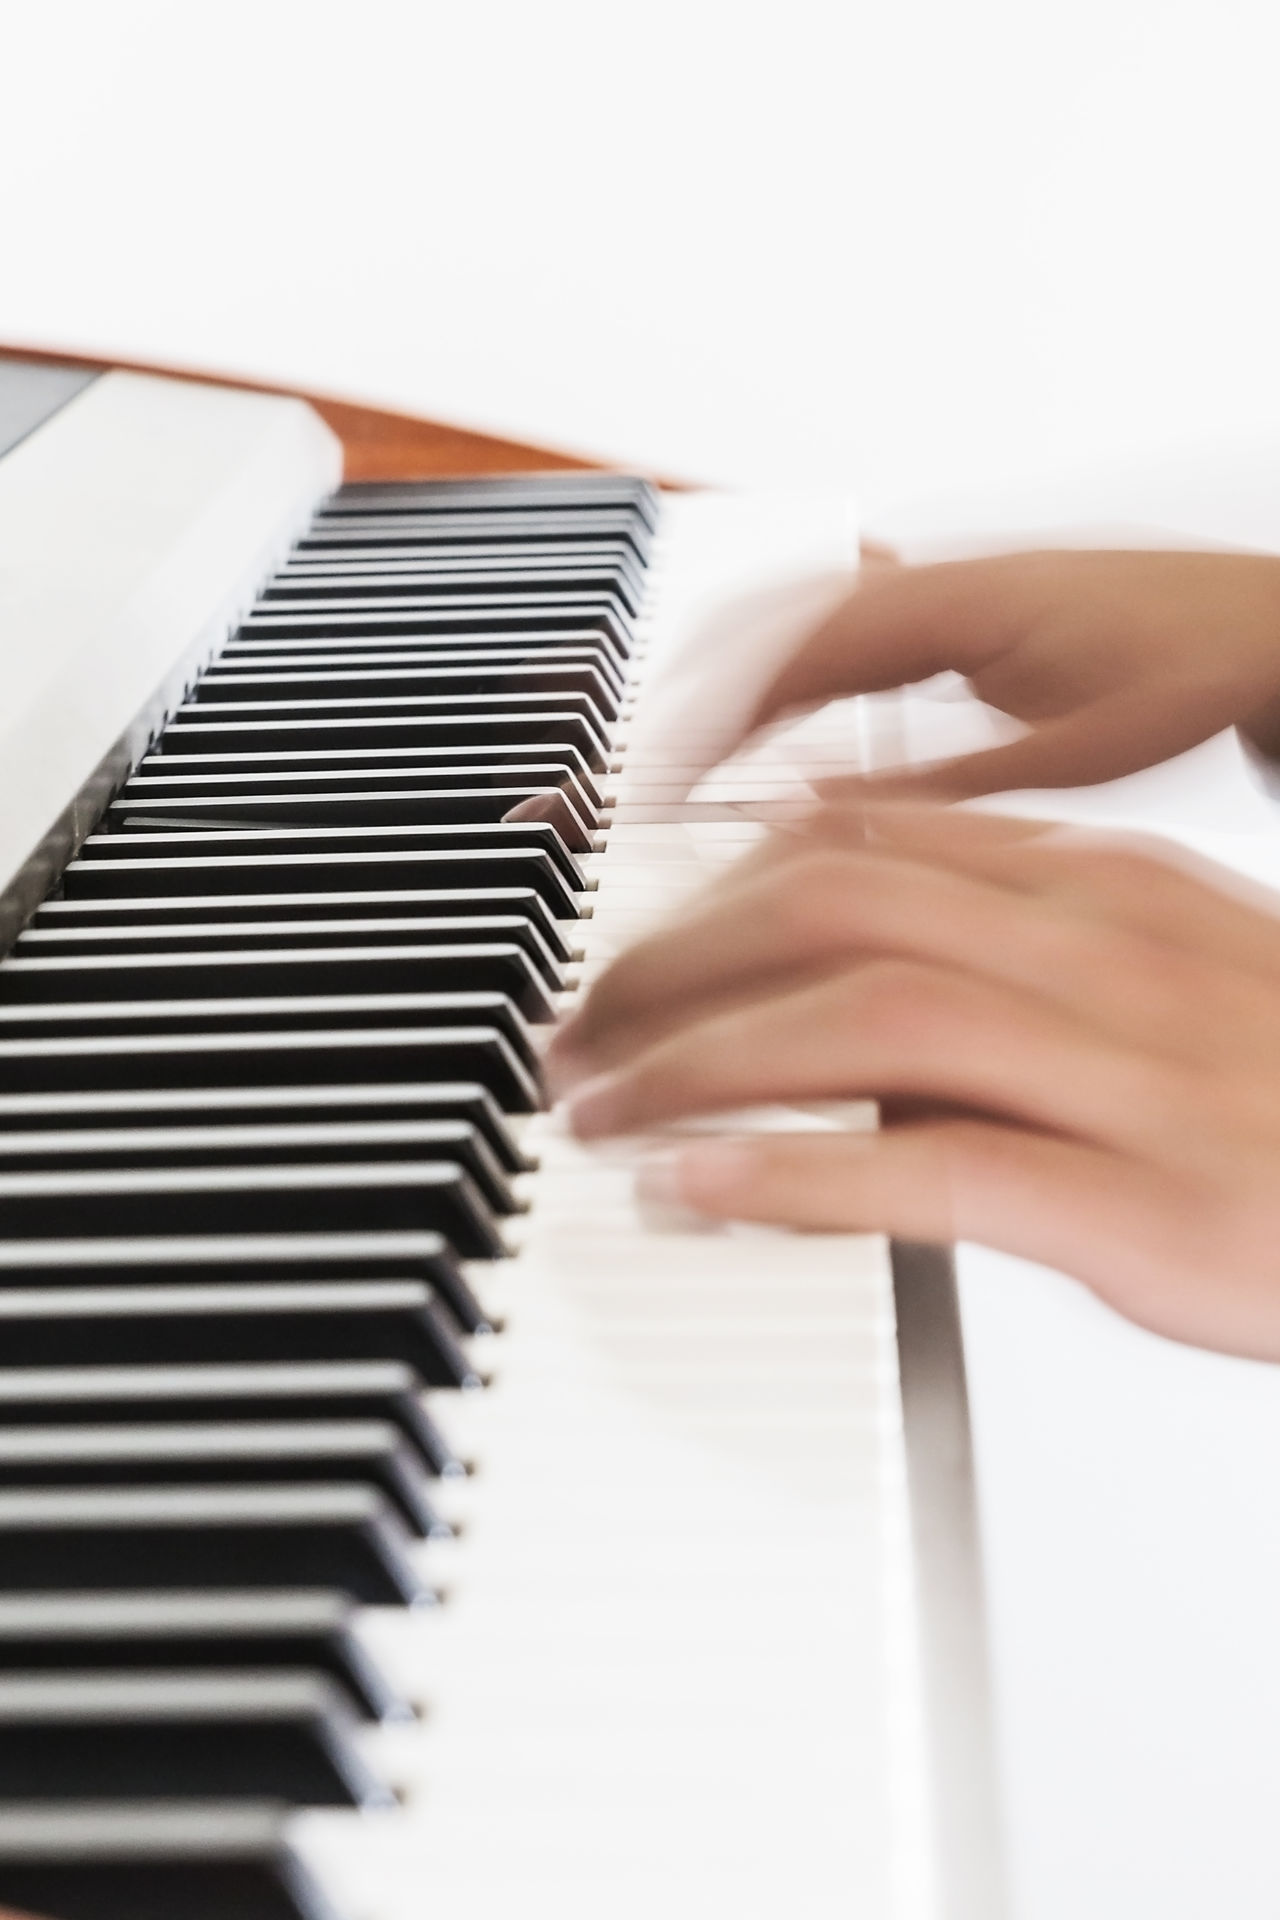 A person playing piano - Arts Culture And Entertainment Classical Music Close-up Exceptional Photographs Eye4photography  EyeEm Gallery Hello World Human Body Part Indoors  Keyboard Music Musical Instrument Musician One Person Person Piano Piano Key Piano Keys Playing Simplicity The Week Of Eyeem Vertical White Background TakeoverMusic Piano Moments